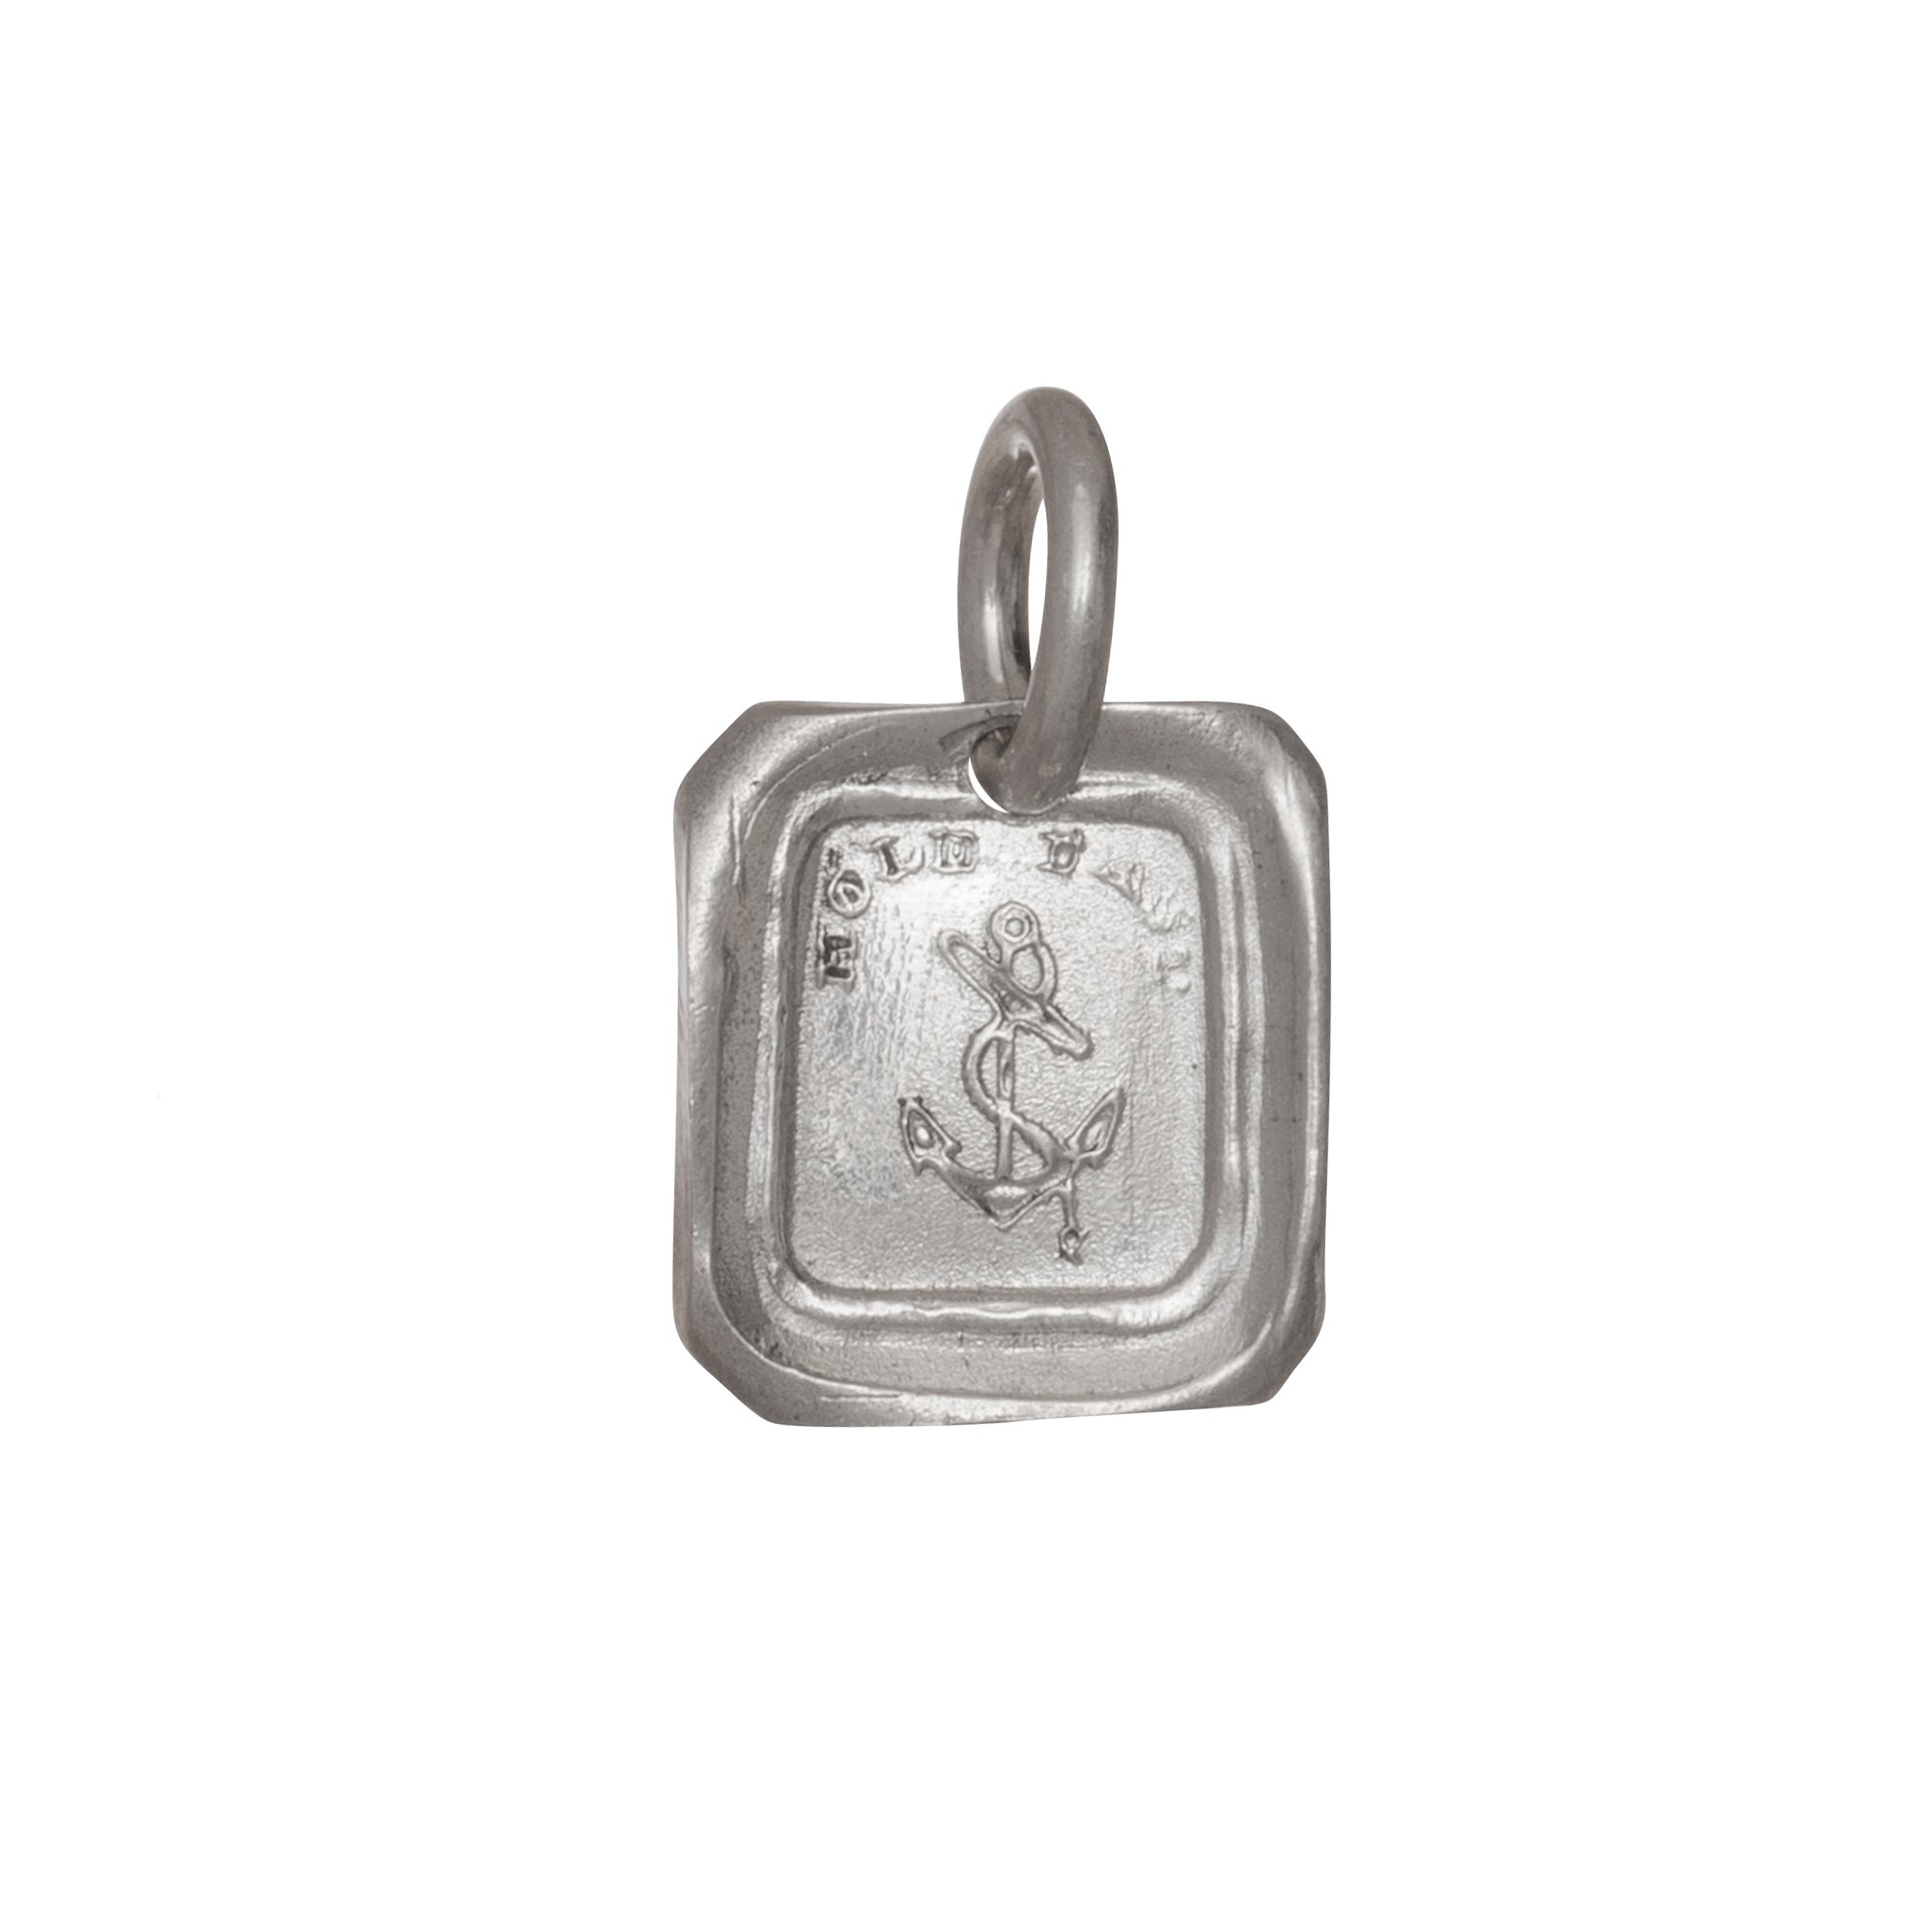 Silver Hold Fast Intaglio by James Colarusso for Broken English Jewelry